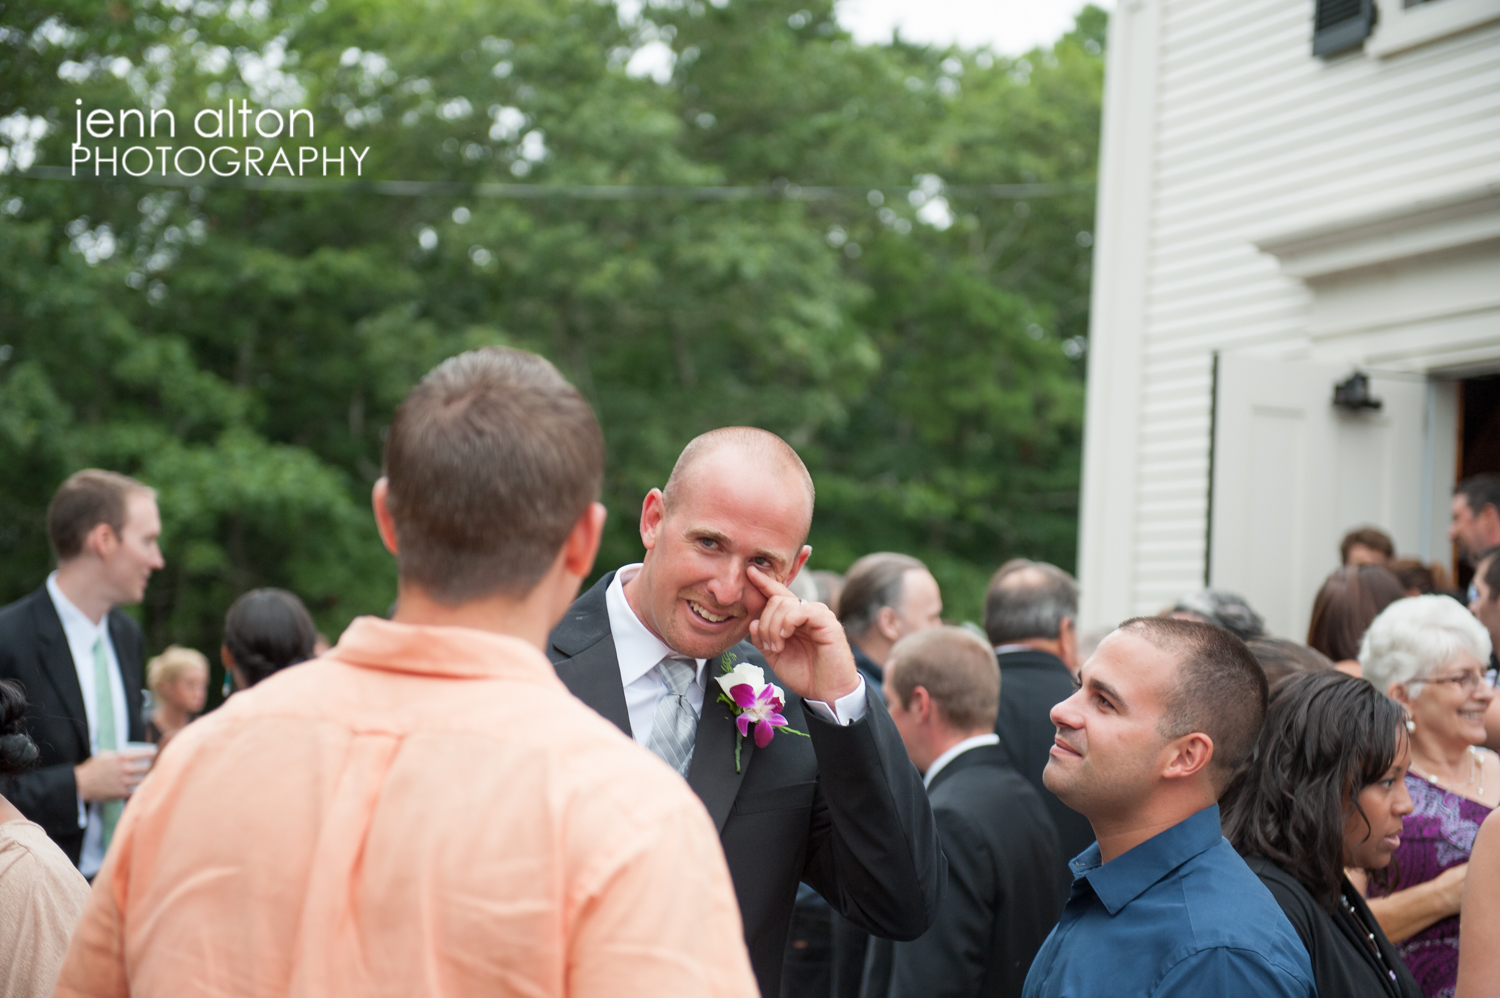 Groom accepting congratulations and becoming emotional after the ceremony, Cape Cod Wedding.